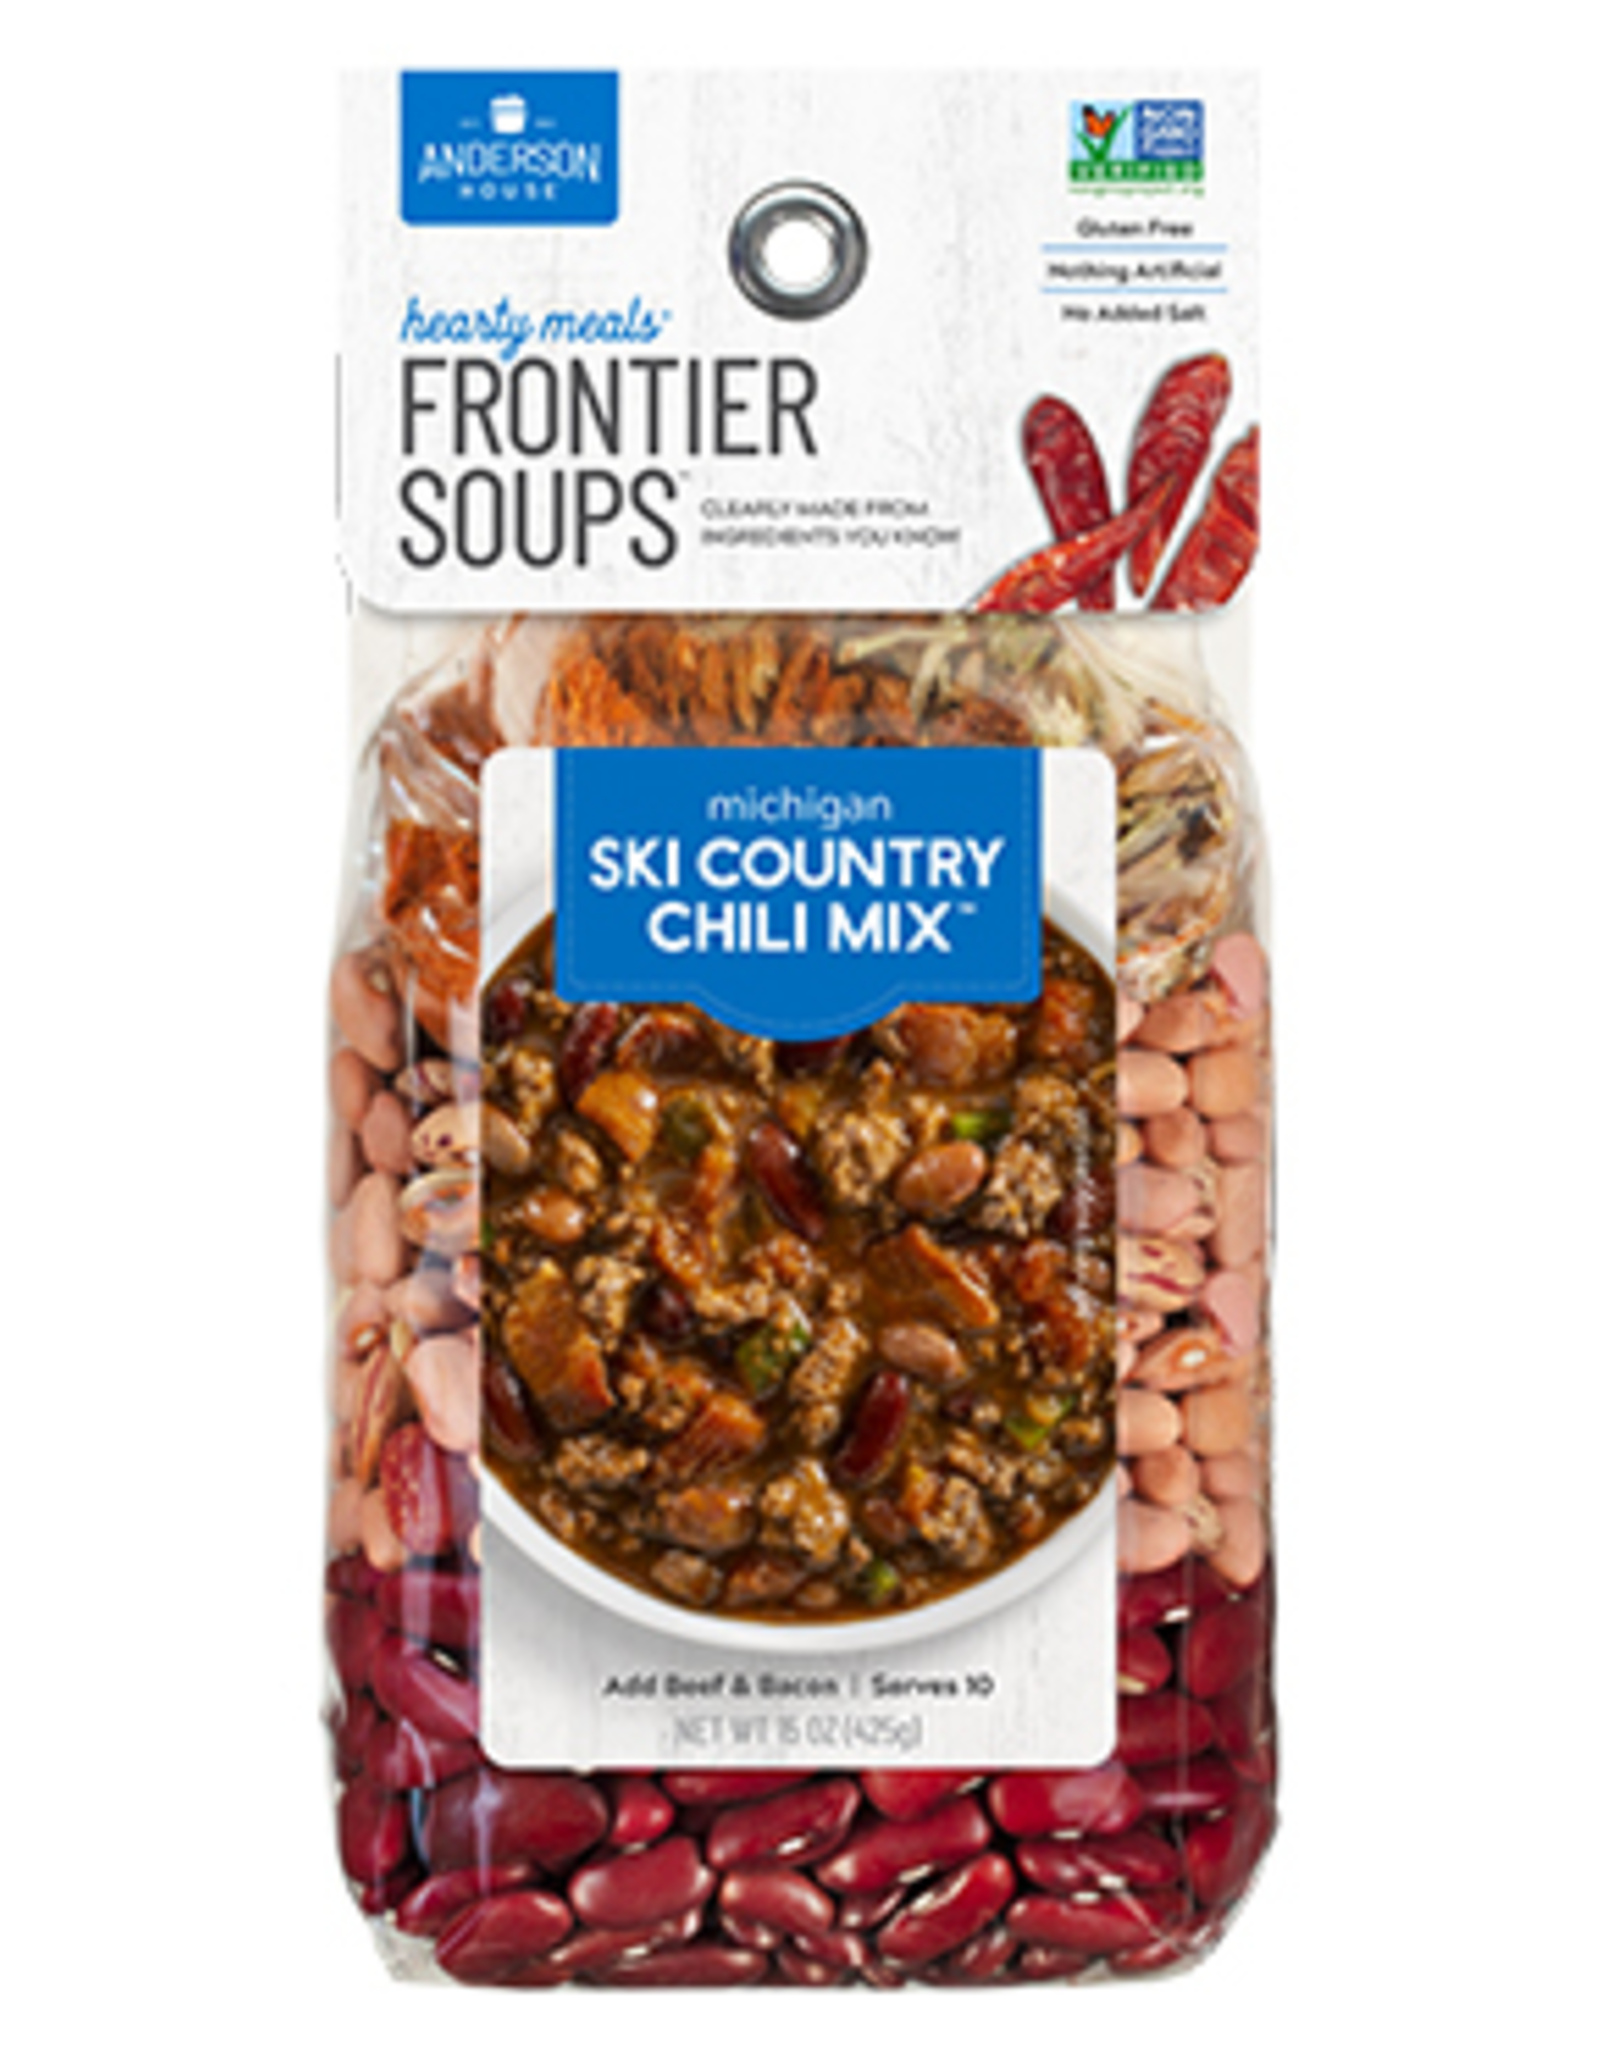 Frontier Soups Michigan Ski Country Chili Soup Mix